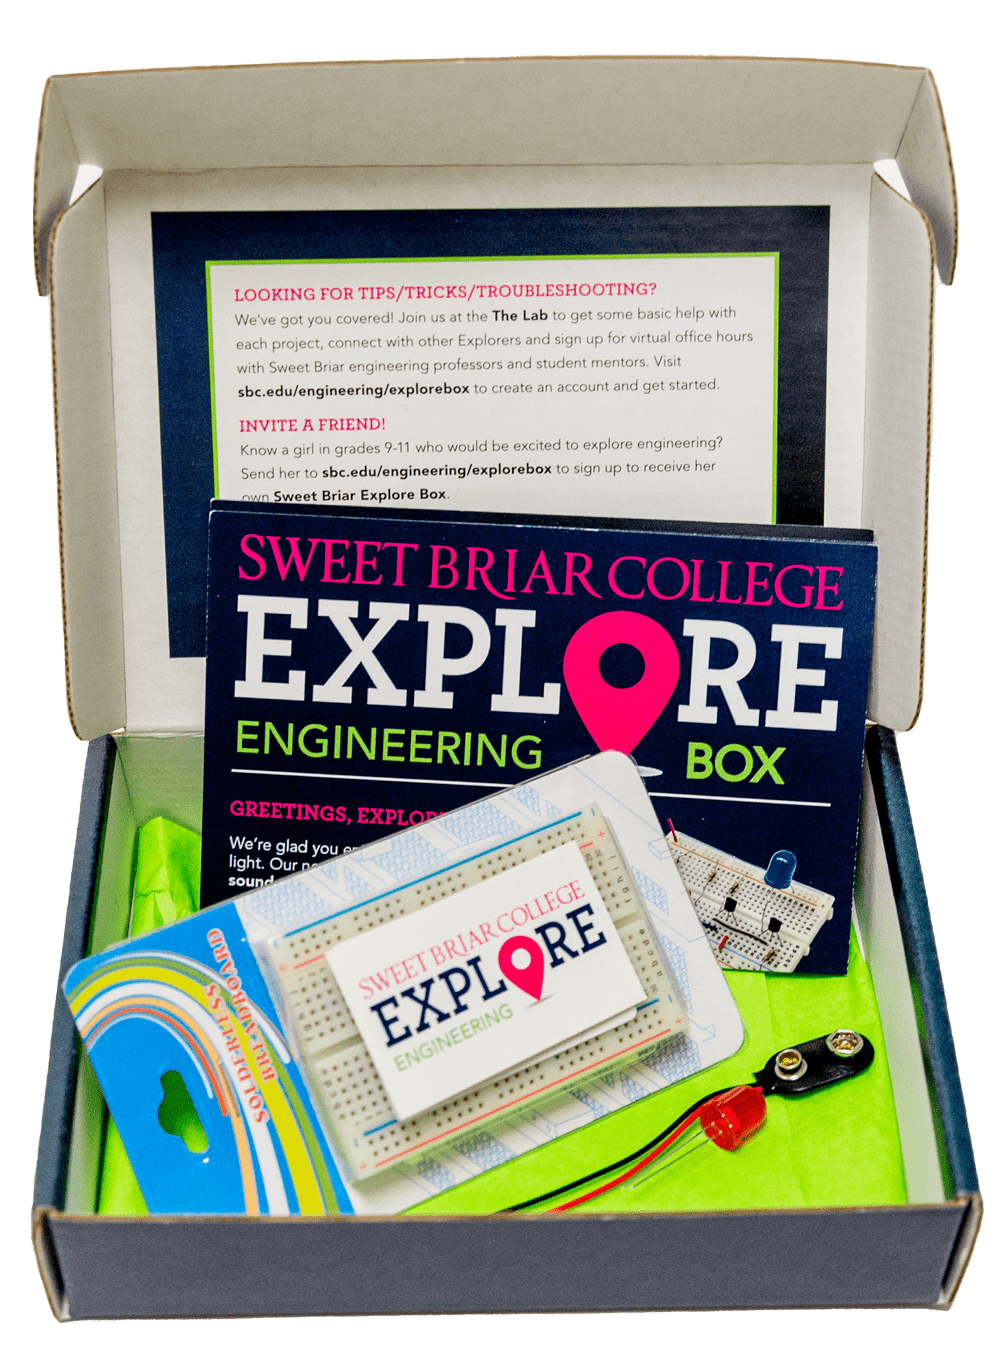 Sweet Briar College Explore Engineering Box